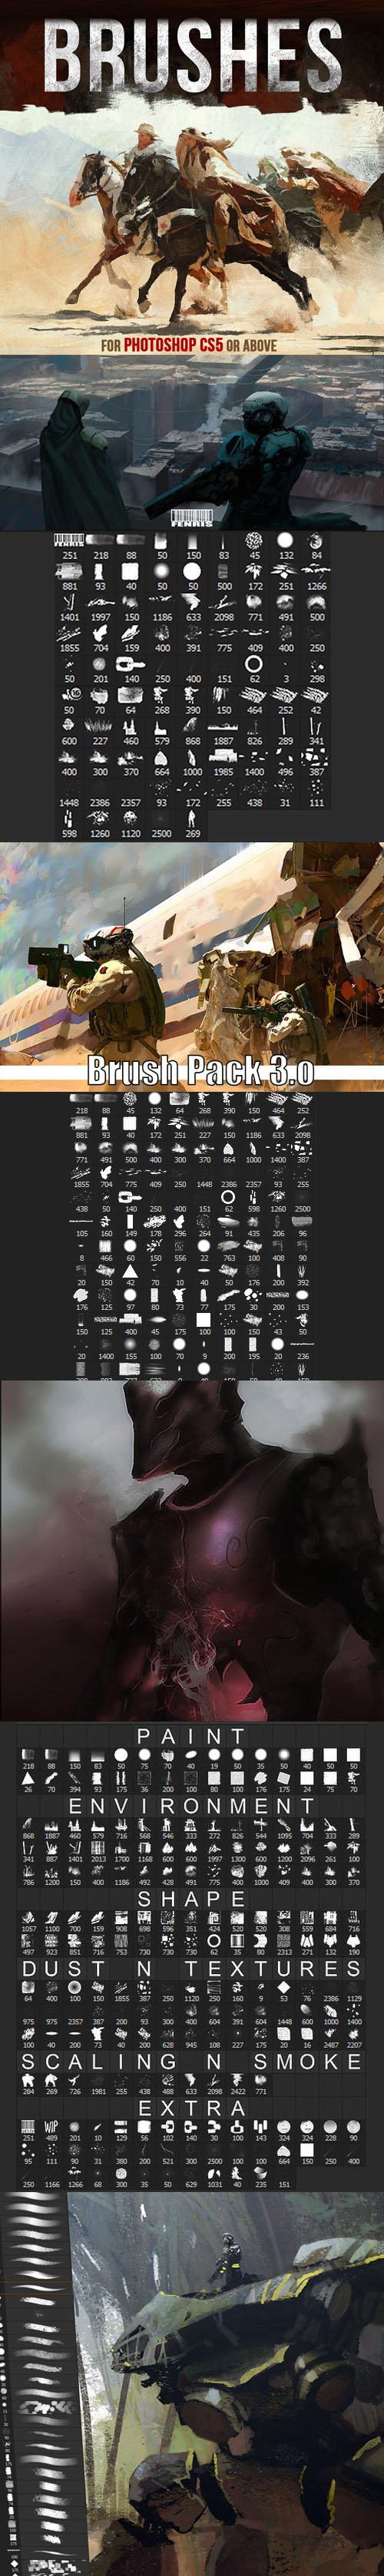 Huge Collection of Photoshop Brushes for Painting